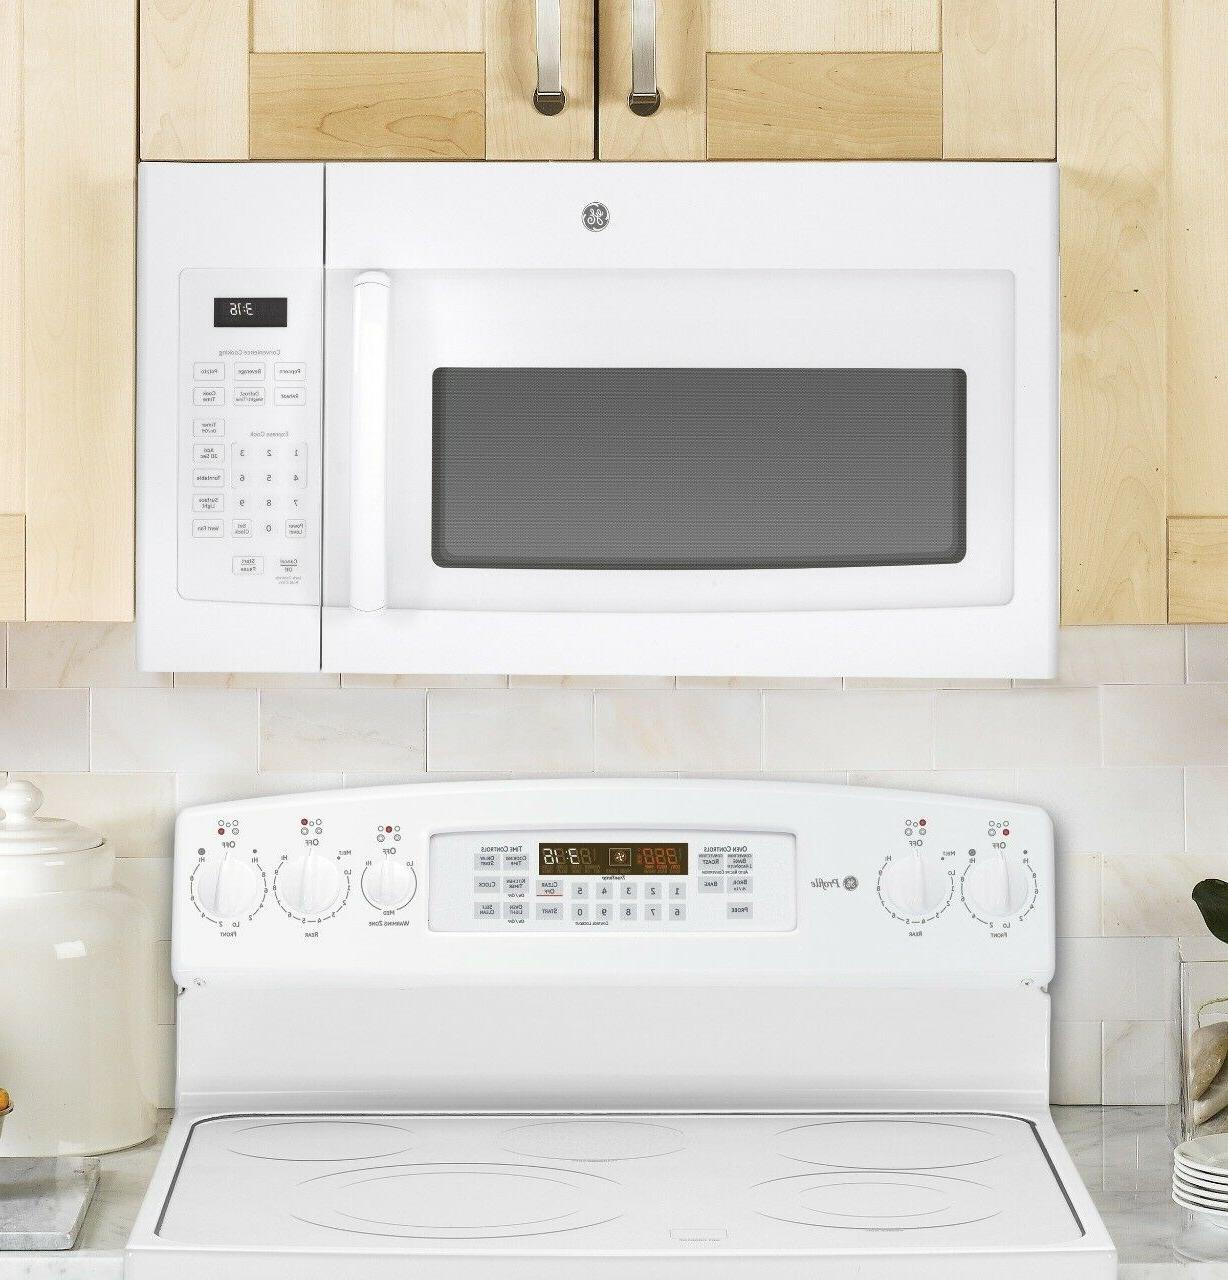 GE 1.6 Ft. Over-the-Range Microwave